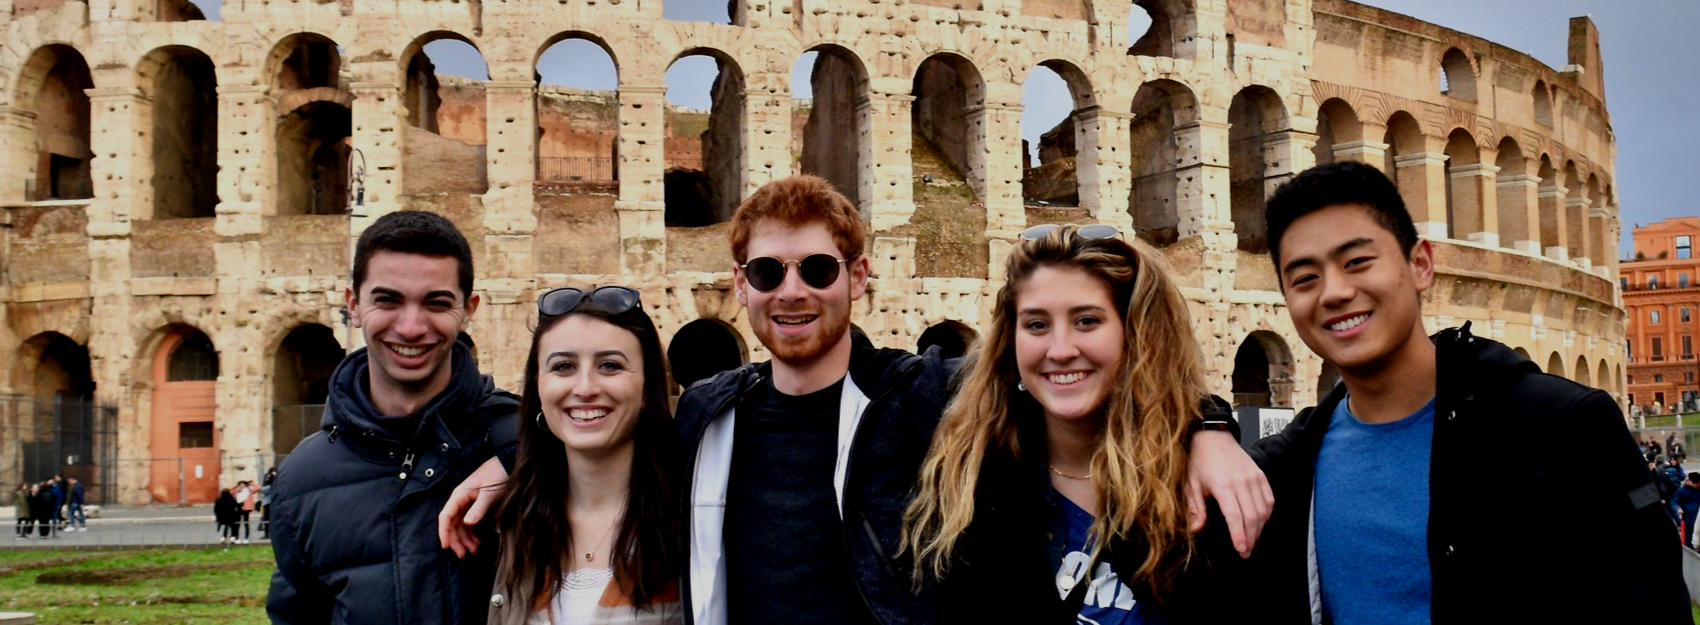 students smiling standing in front of colosseum